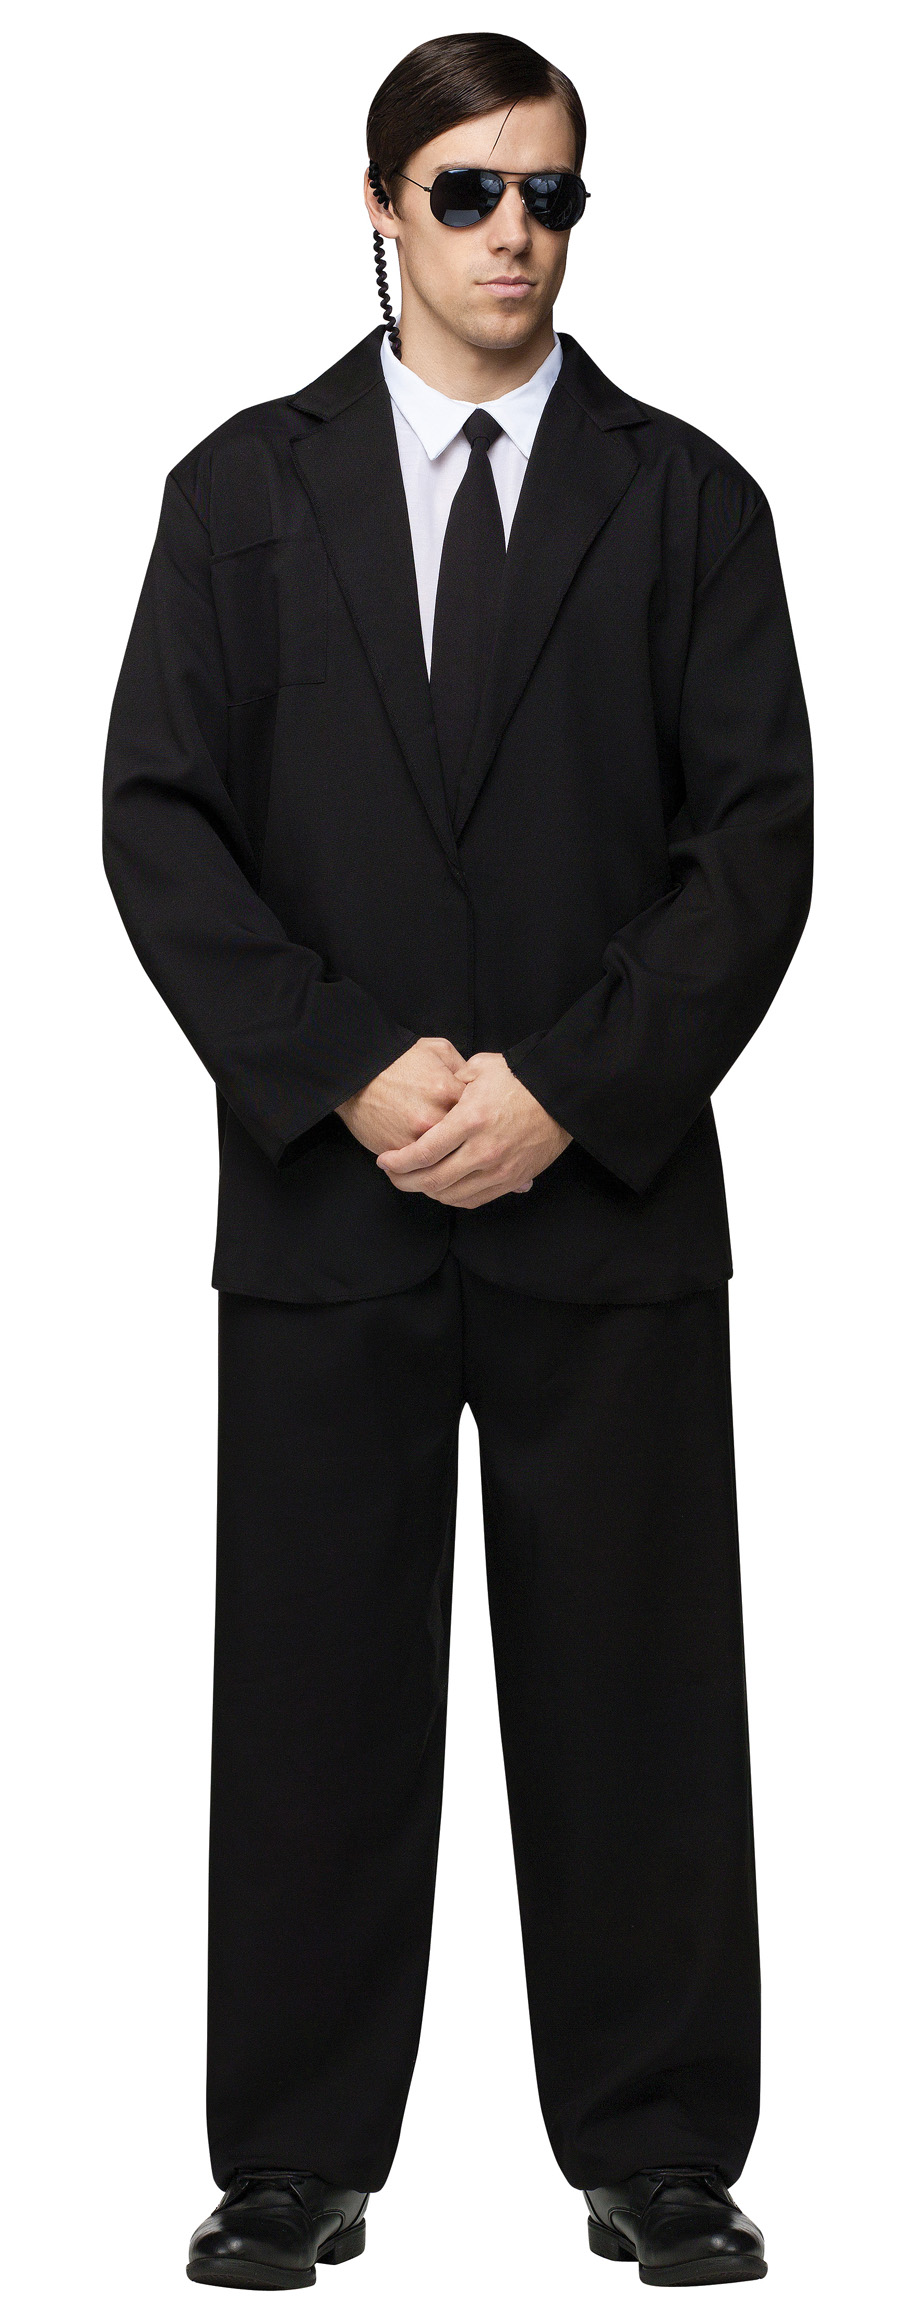 Cia Agent Costume For Kids